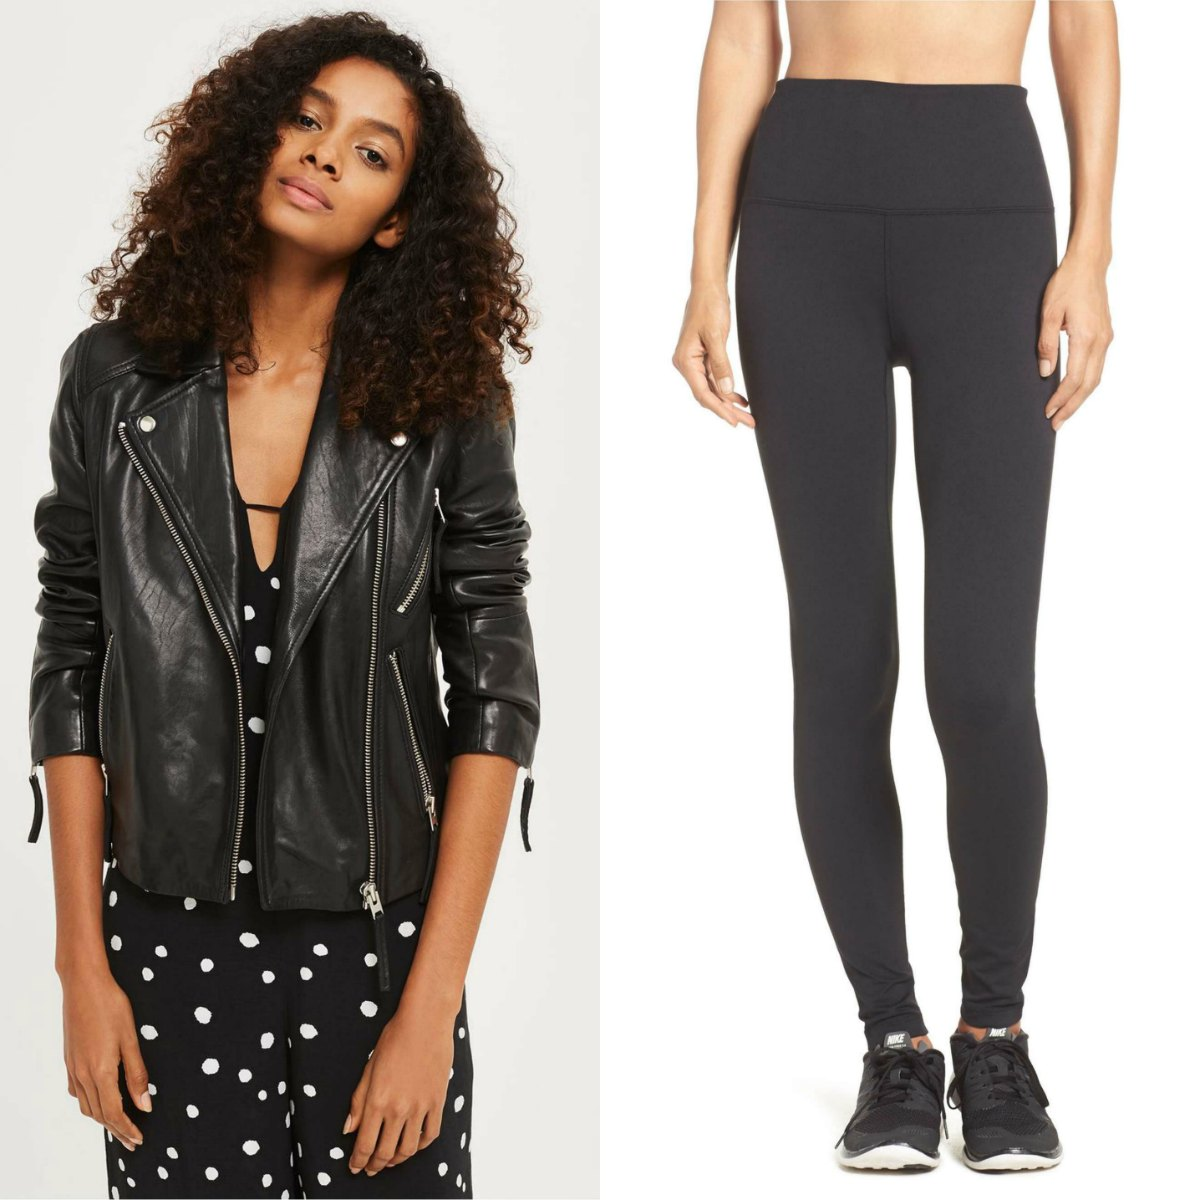 Nordstrom Anniversary Sale Best Buys Fashion Beauty Shoes zella leggings and sale leather jacket